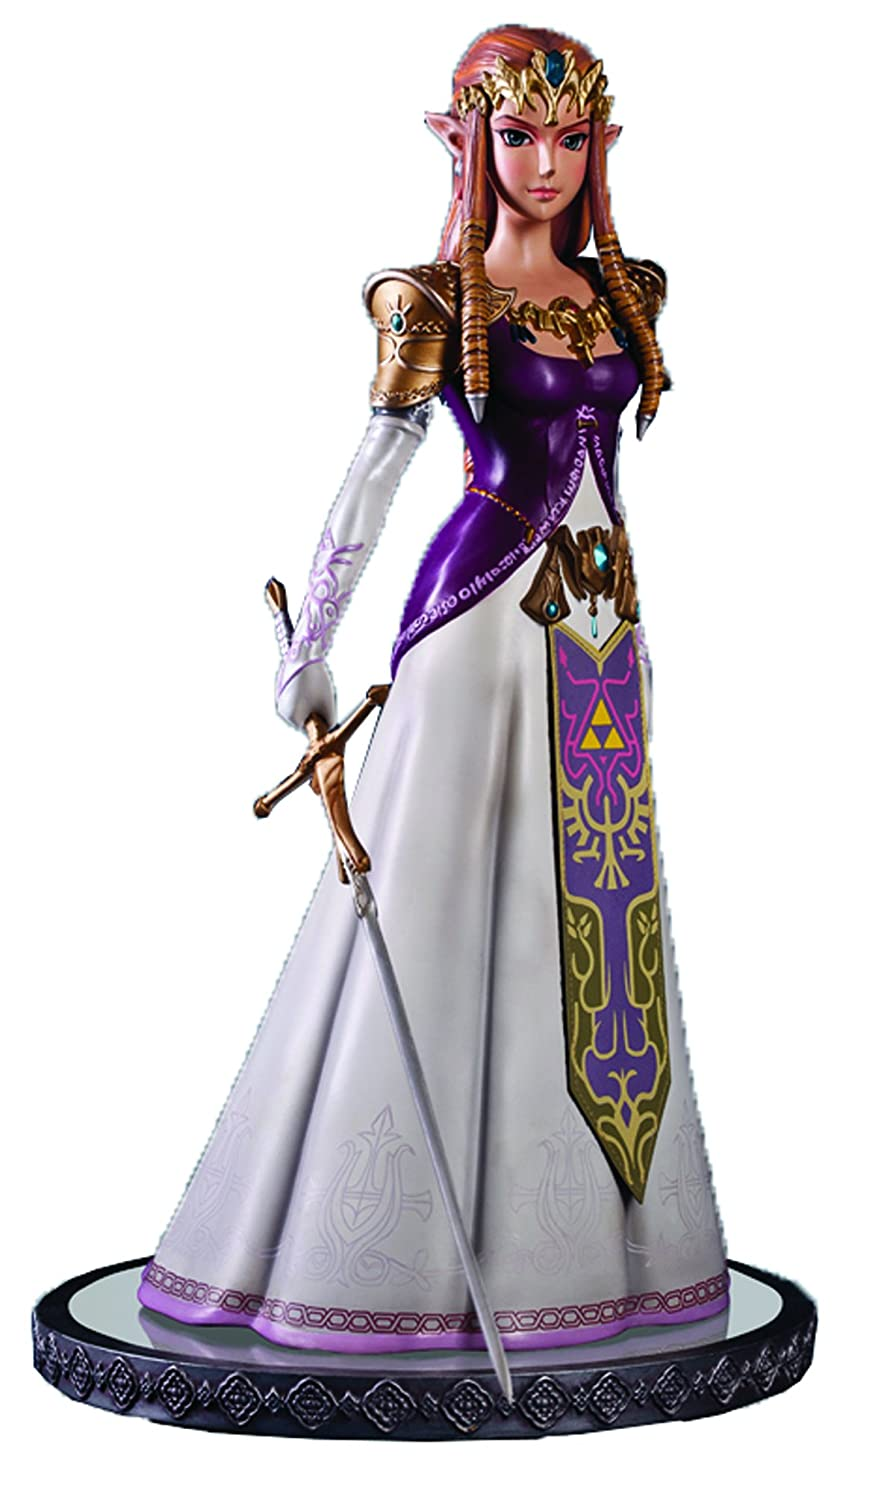 Ben Indra further Academy Awards also Robert Redfords Malibu Beach House For Sale For 15 Million See Inside moreover The Legend Of Zelda Twilight Princess First 4 Figures Princess Zelda Statue Gets Release Date 310 also A Look At The Kingdom Hearts 2 Halloween Town Sora Play Arts Kai Figure. on oscar statue s